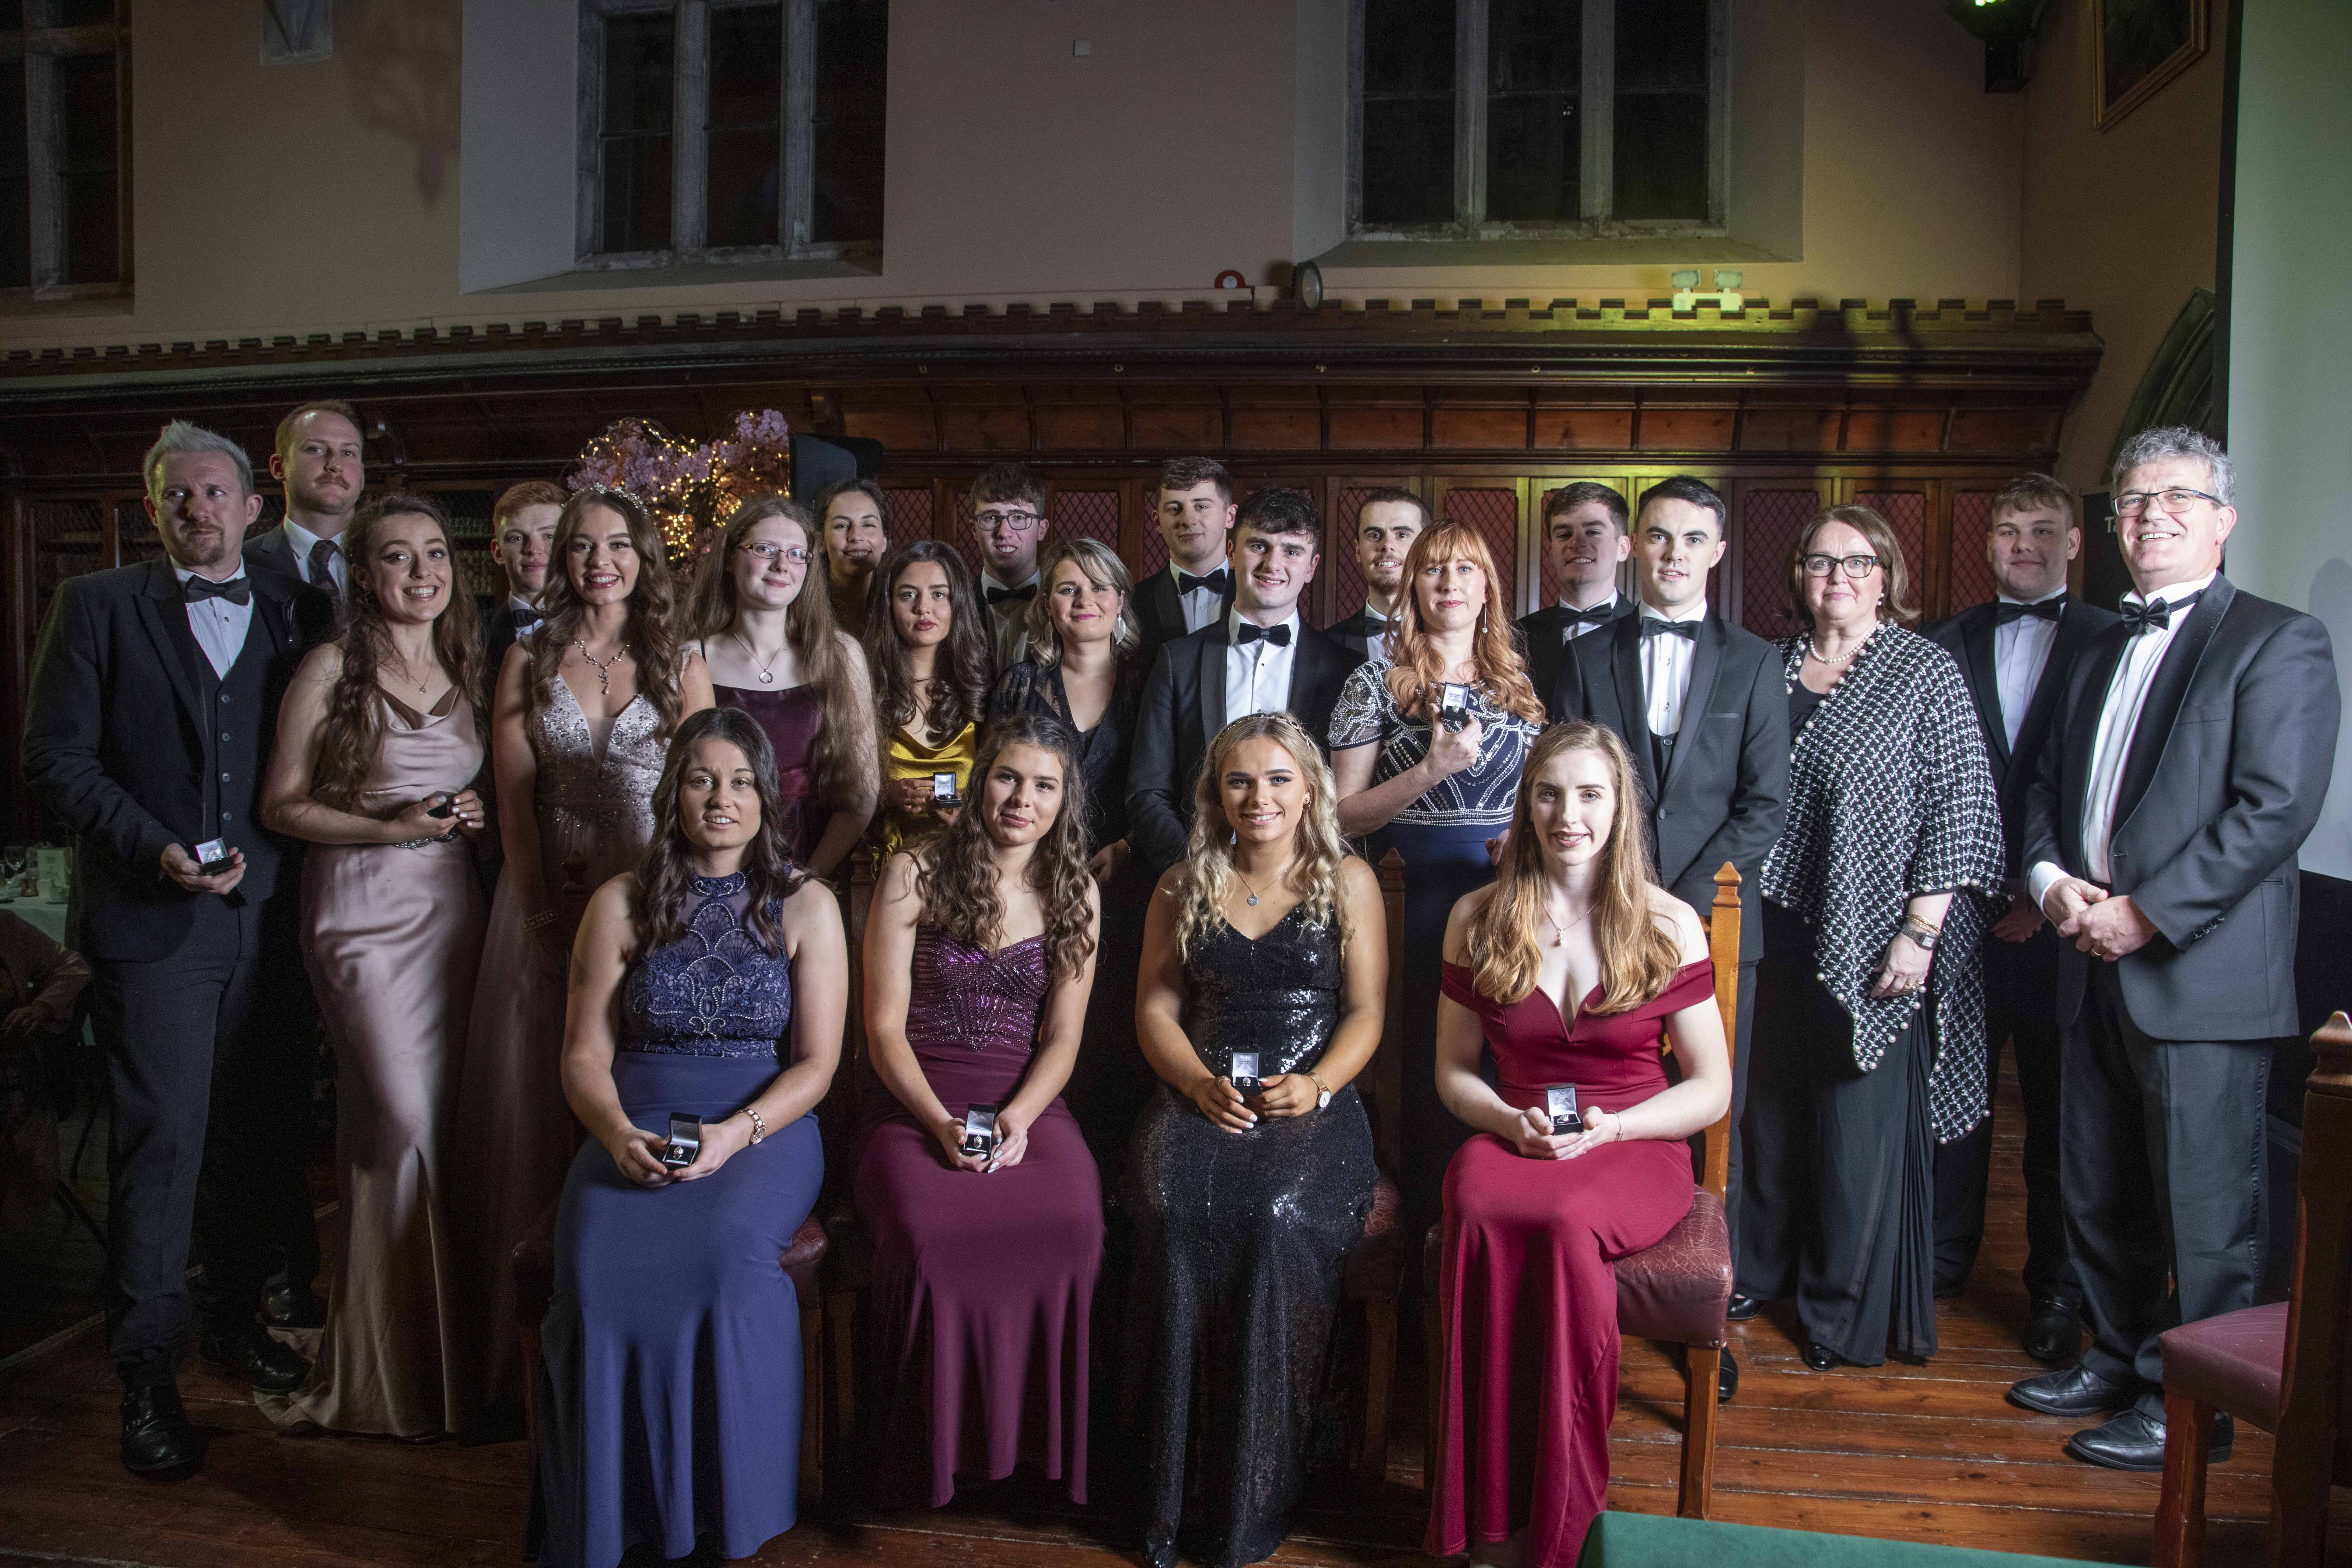 This year's Quercus Gala took place in the Aula Maxima on November 26th, 2019.